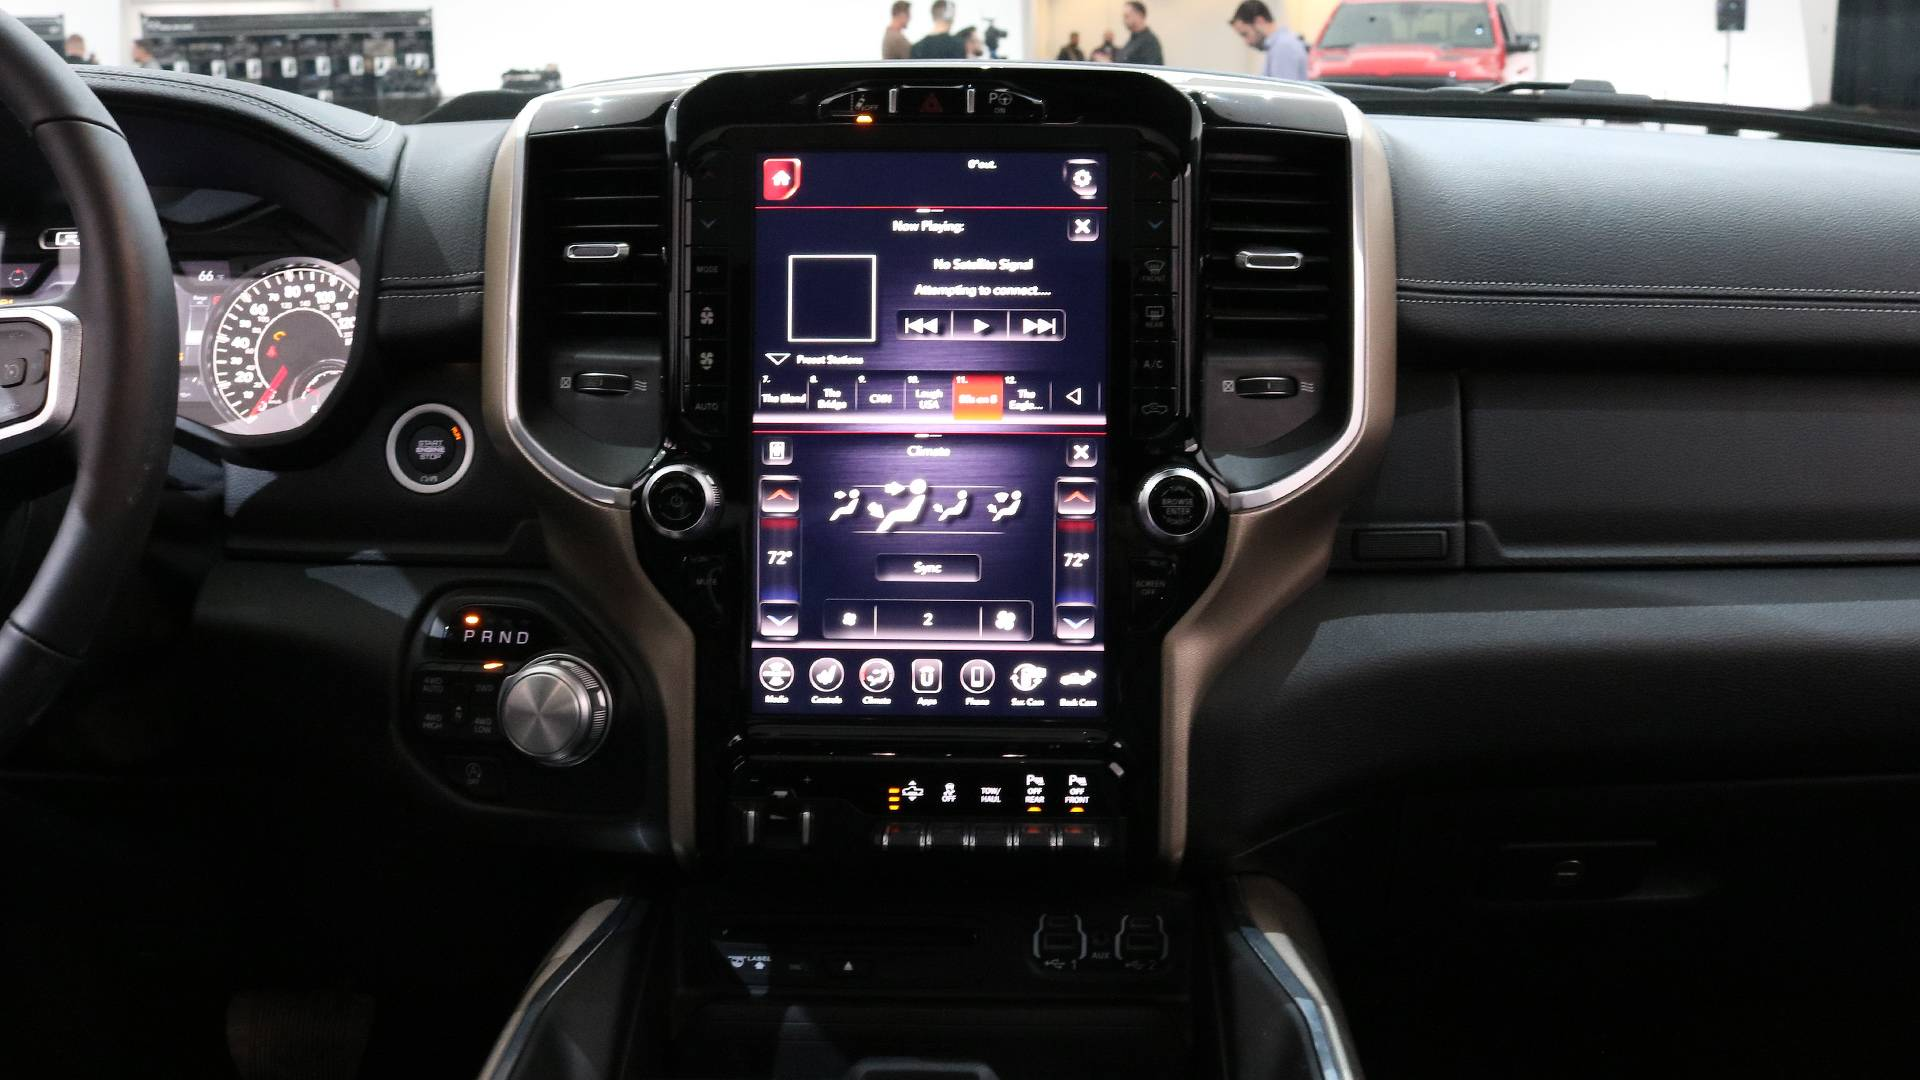 VWVortex.com - 2019 Ram - 12-inch touchscreen vs. the ...